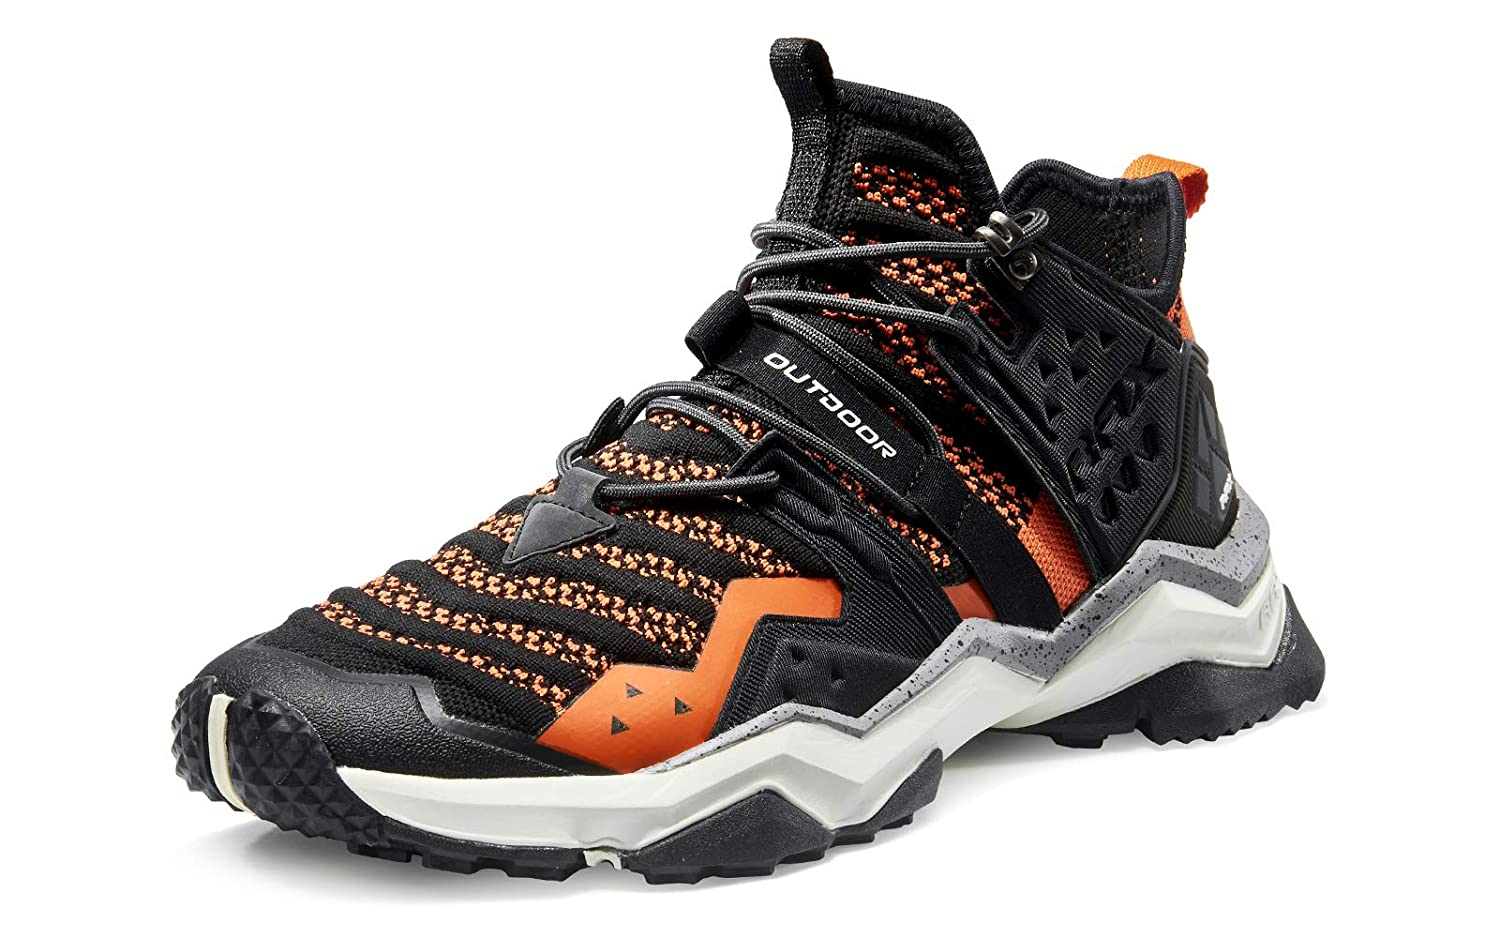 RAX Mens Lightweight Hiking Shoes Camping Backpacking Shoes Outdoor Sneakers